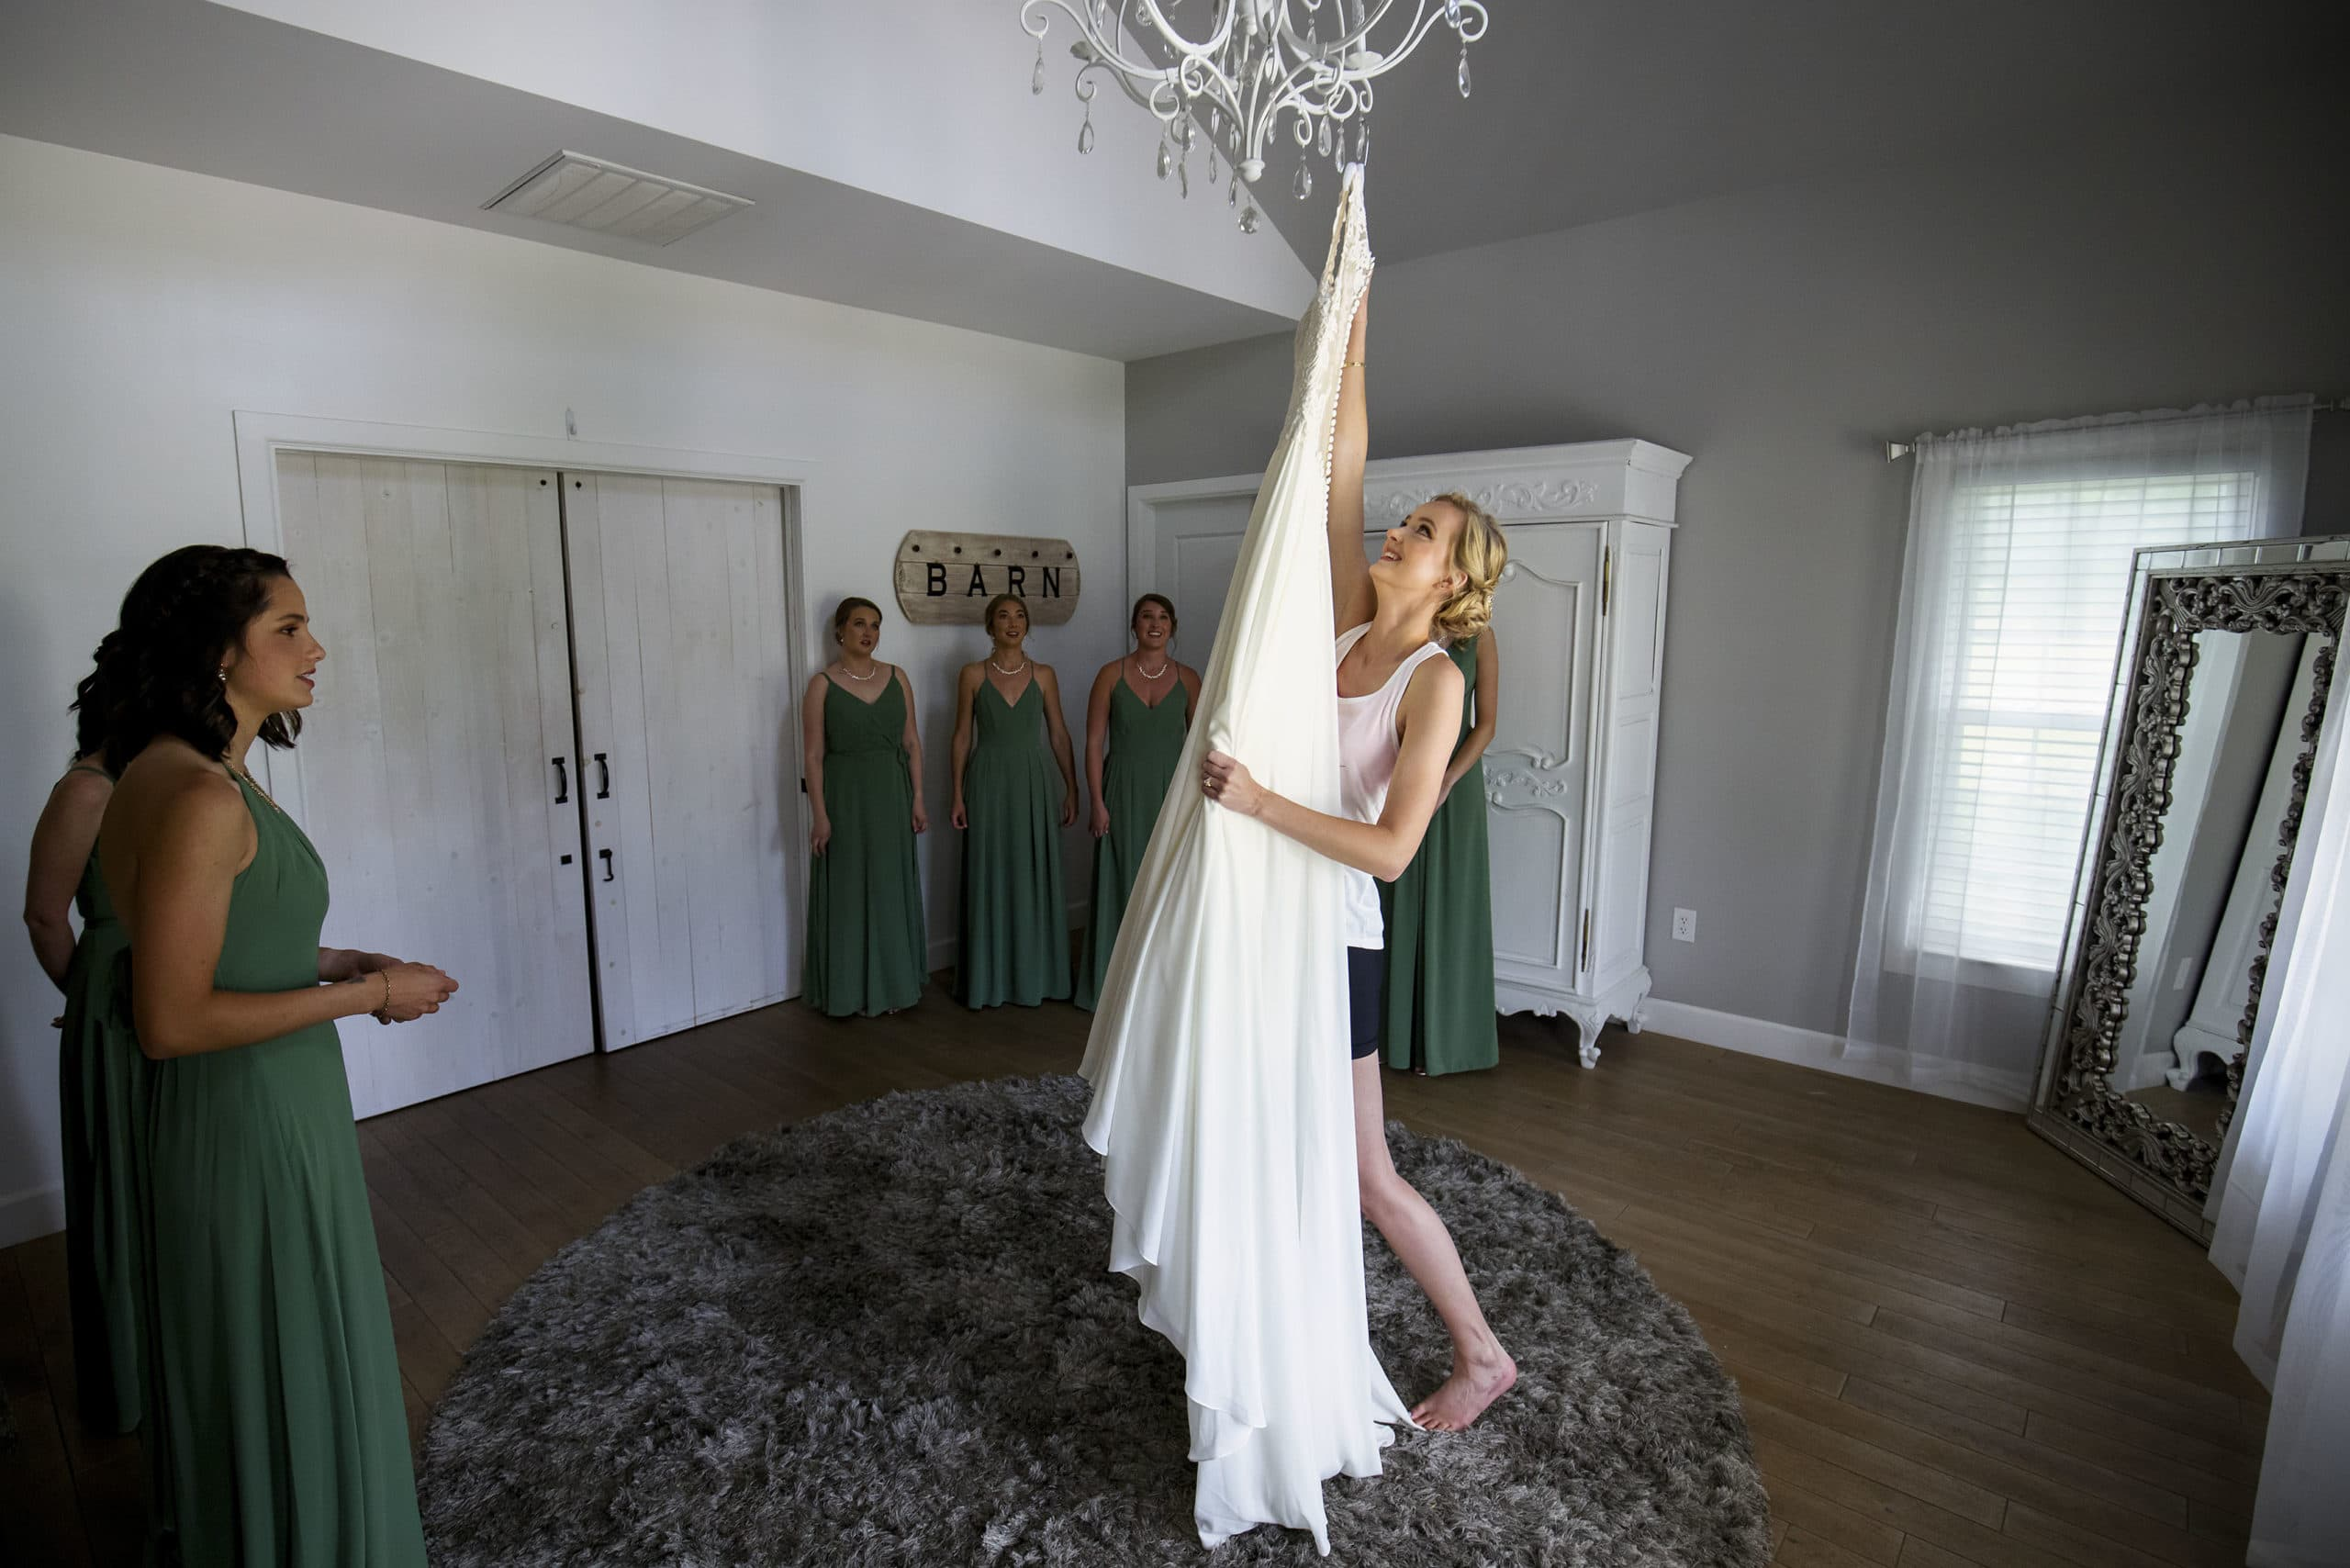 Jennifer reaches up to remove her wedding dress from the chandelier